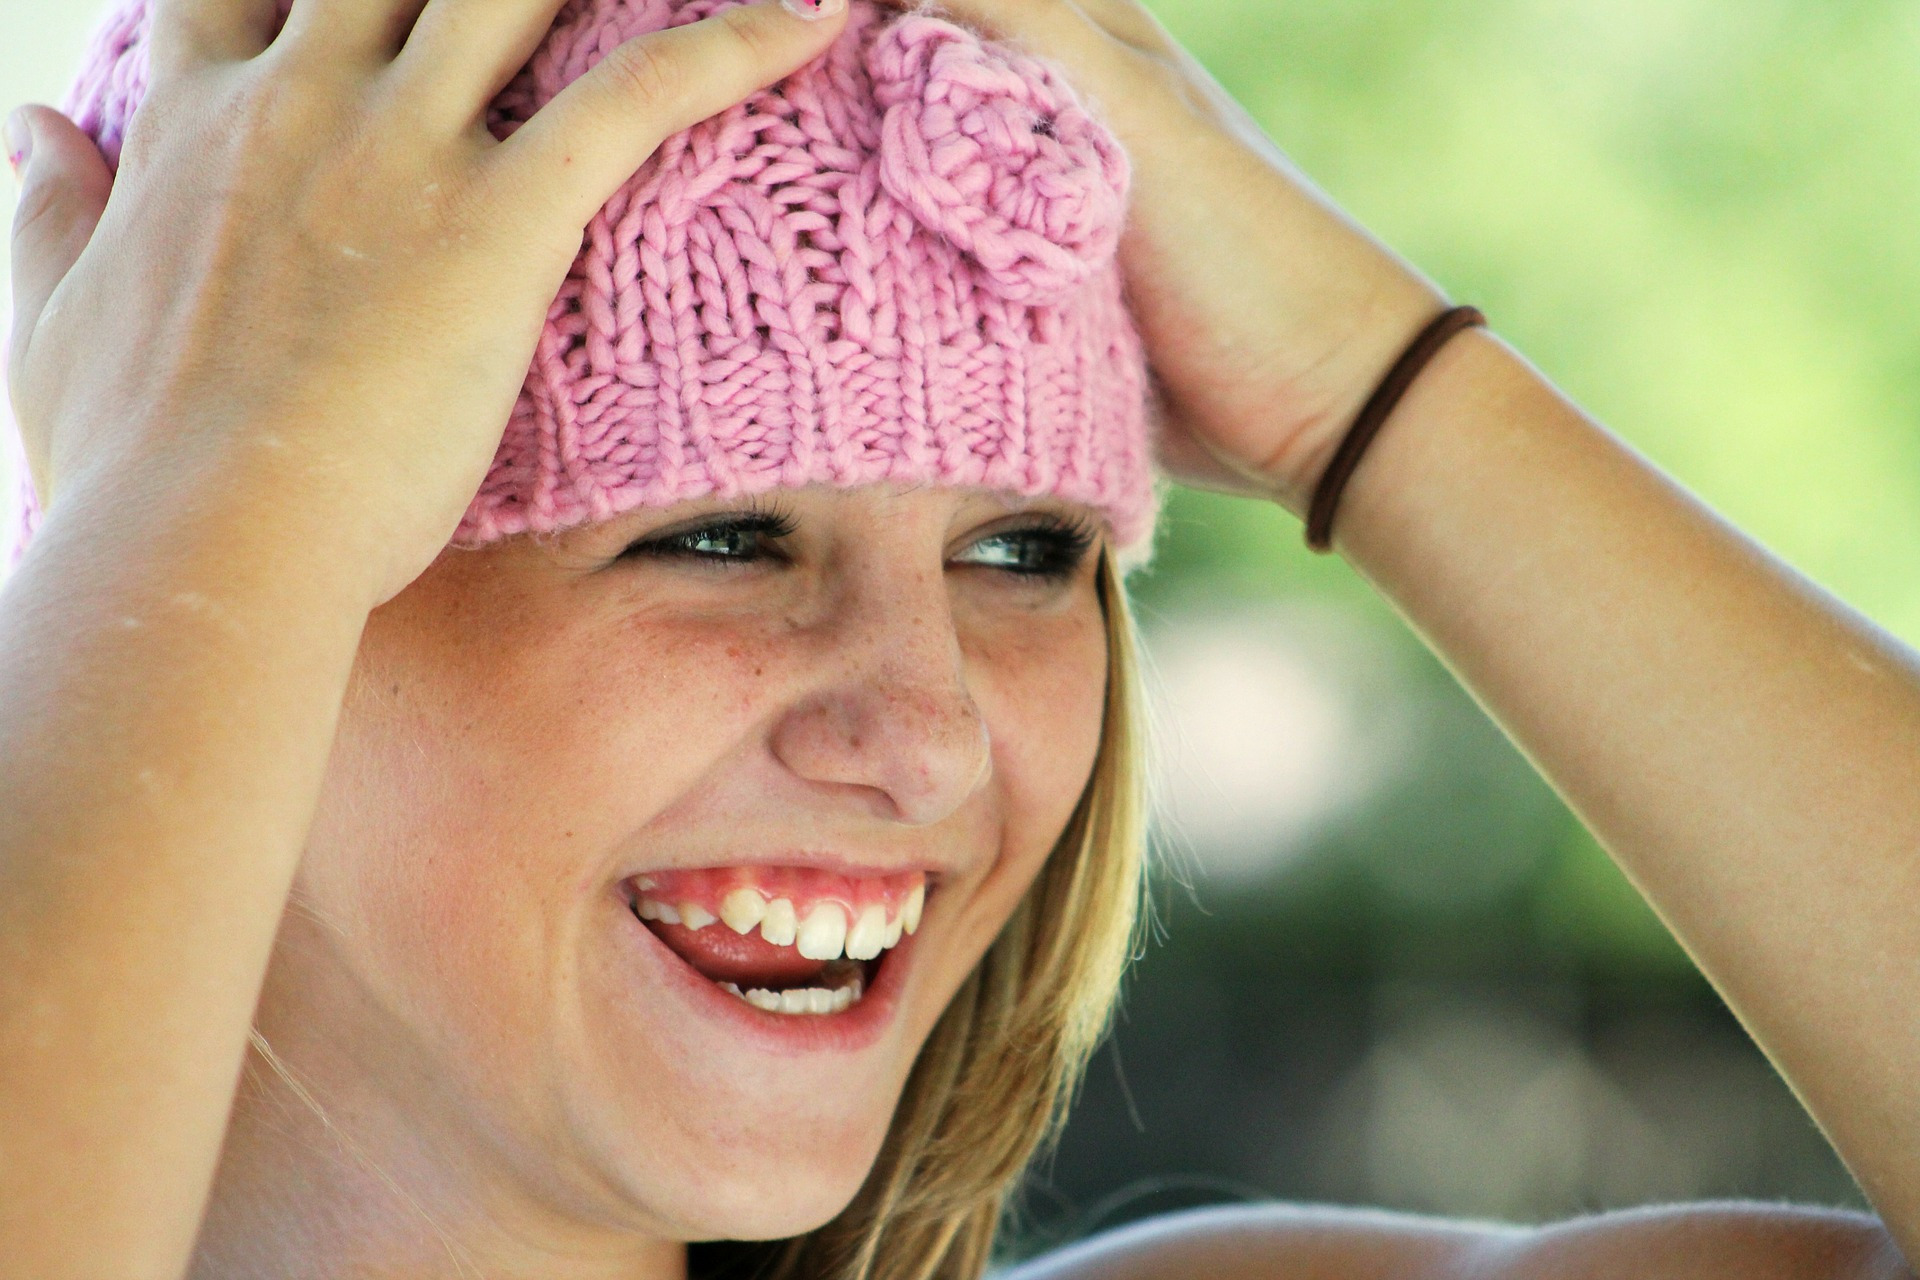 A girl with a pink woolly hat on her head.